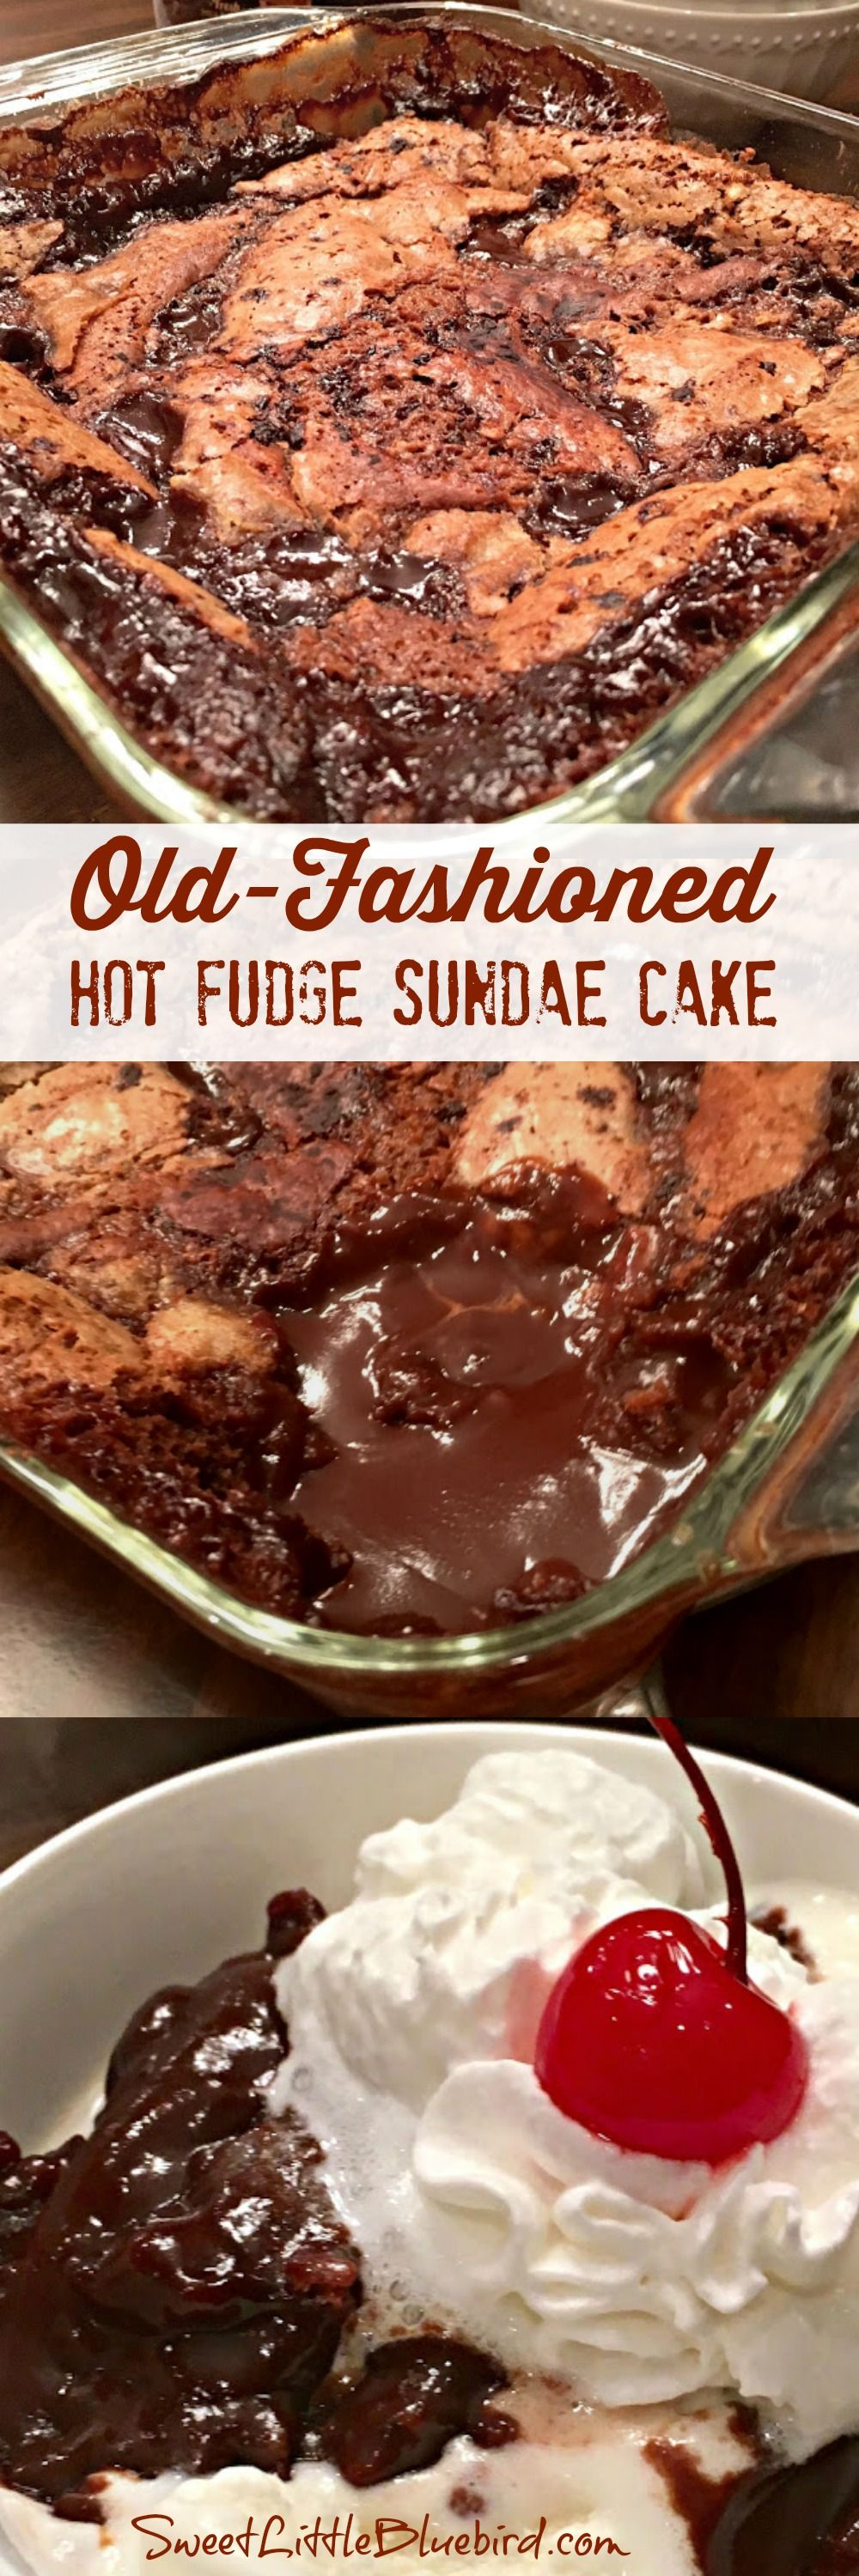 Old-Fashioned Hot Fudge Sundae Cake